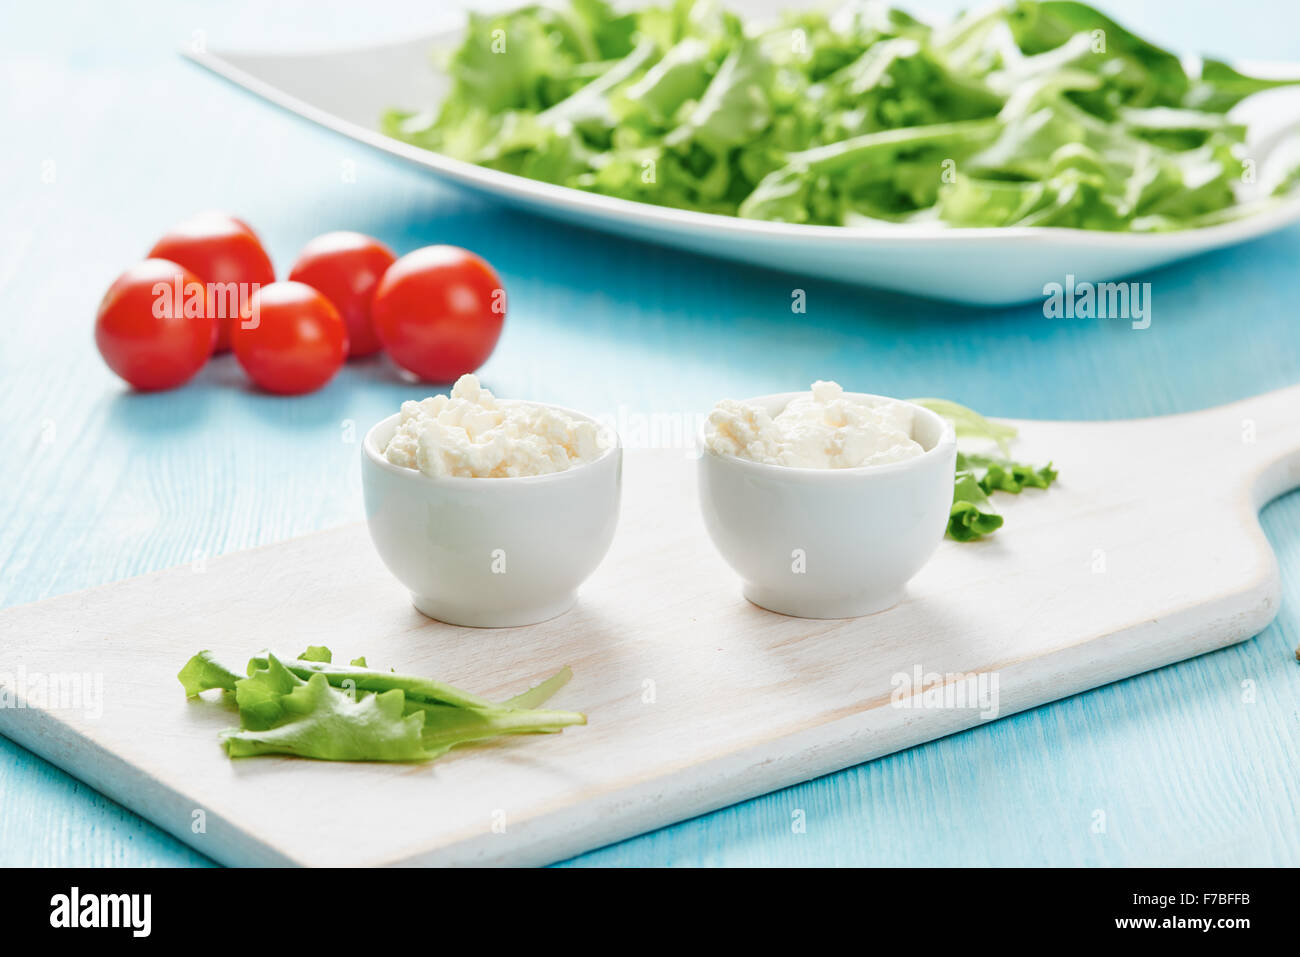 Cottage cheese in two white bowls on blue wooden table, salad and tomato Stock Photo